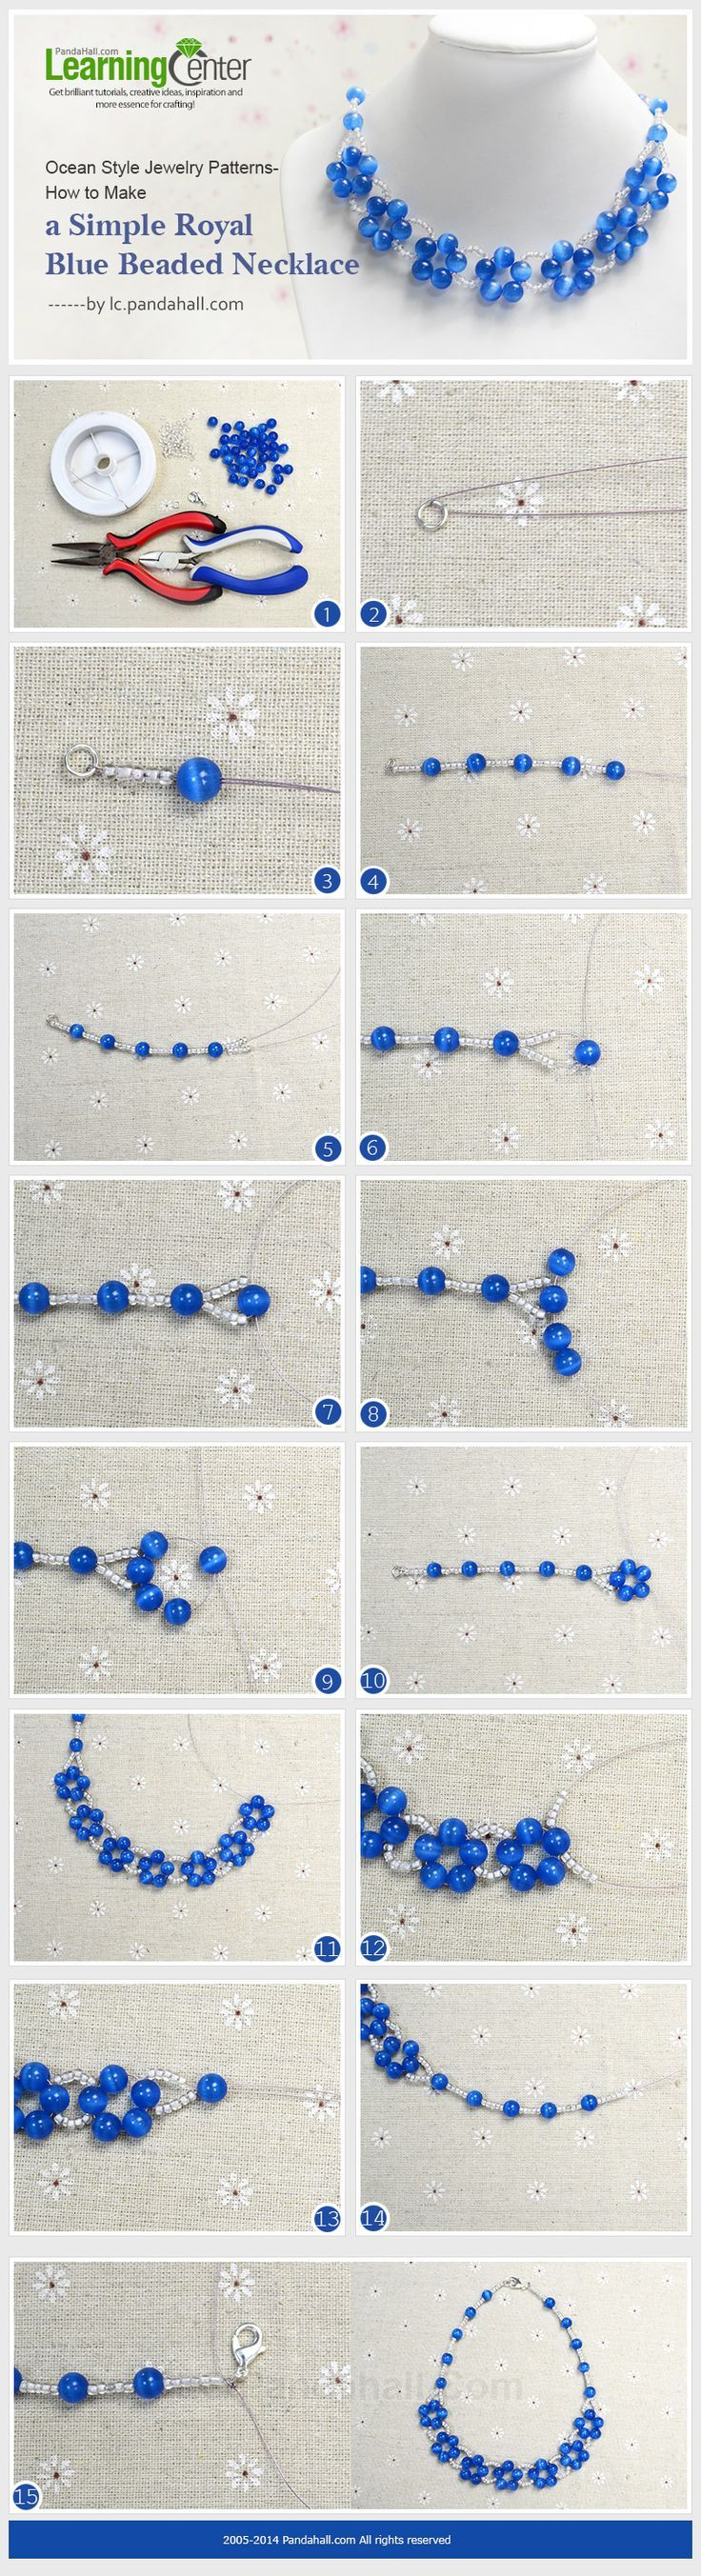 Ocean Style Jewelry Patterns-How to Make a Simple Royal Blue Beaded Necklace #cbloggers #jewelrymaking #jewelryinspo